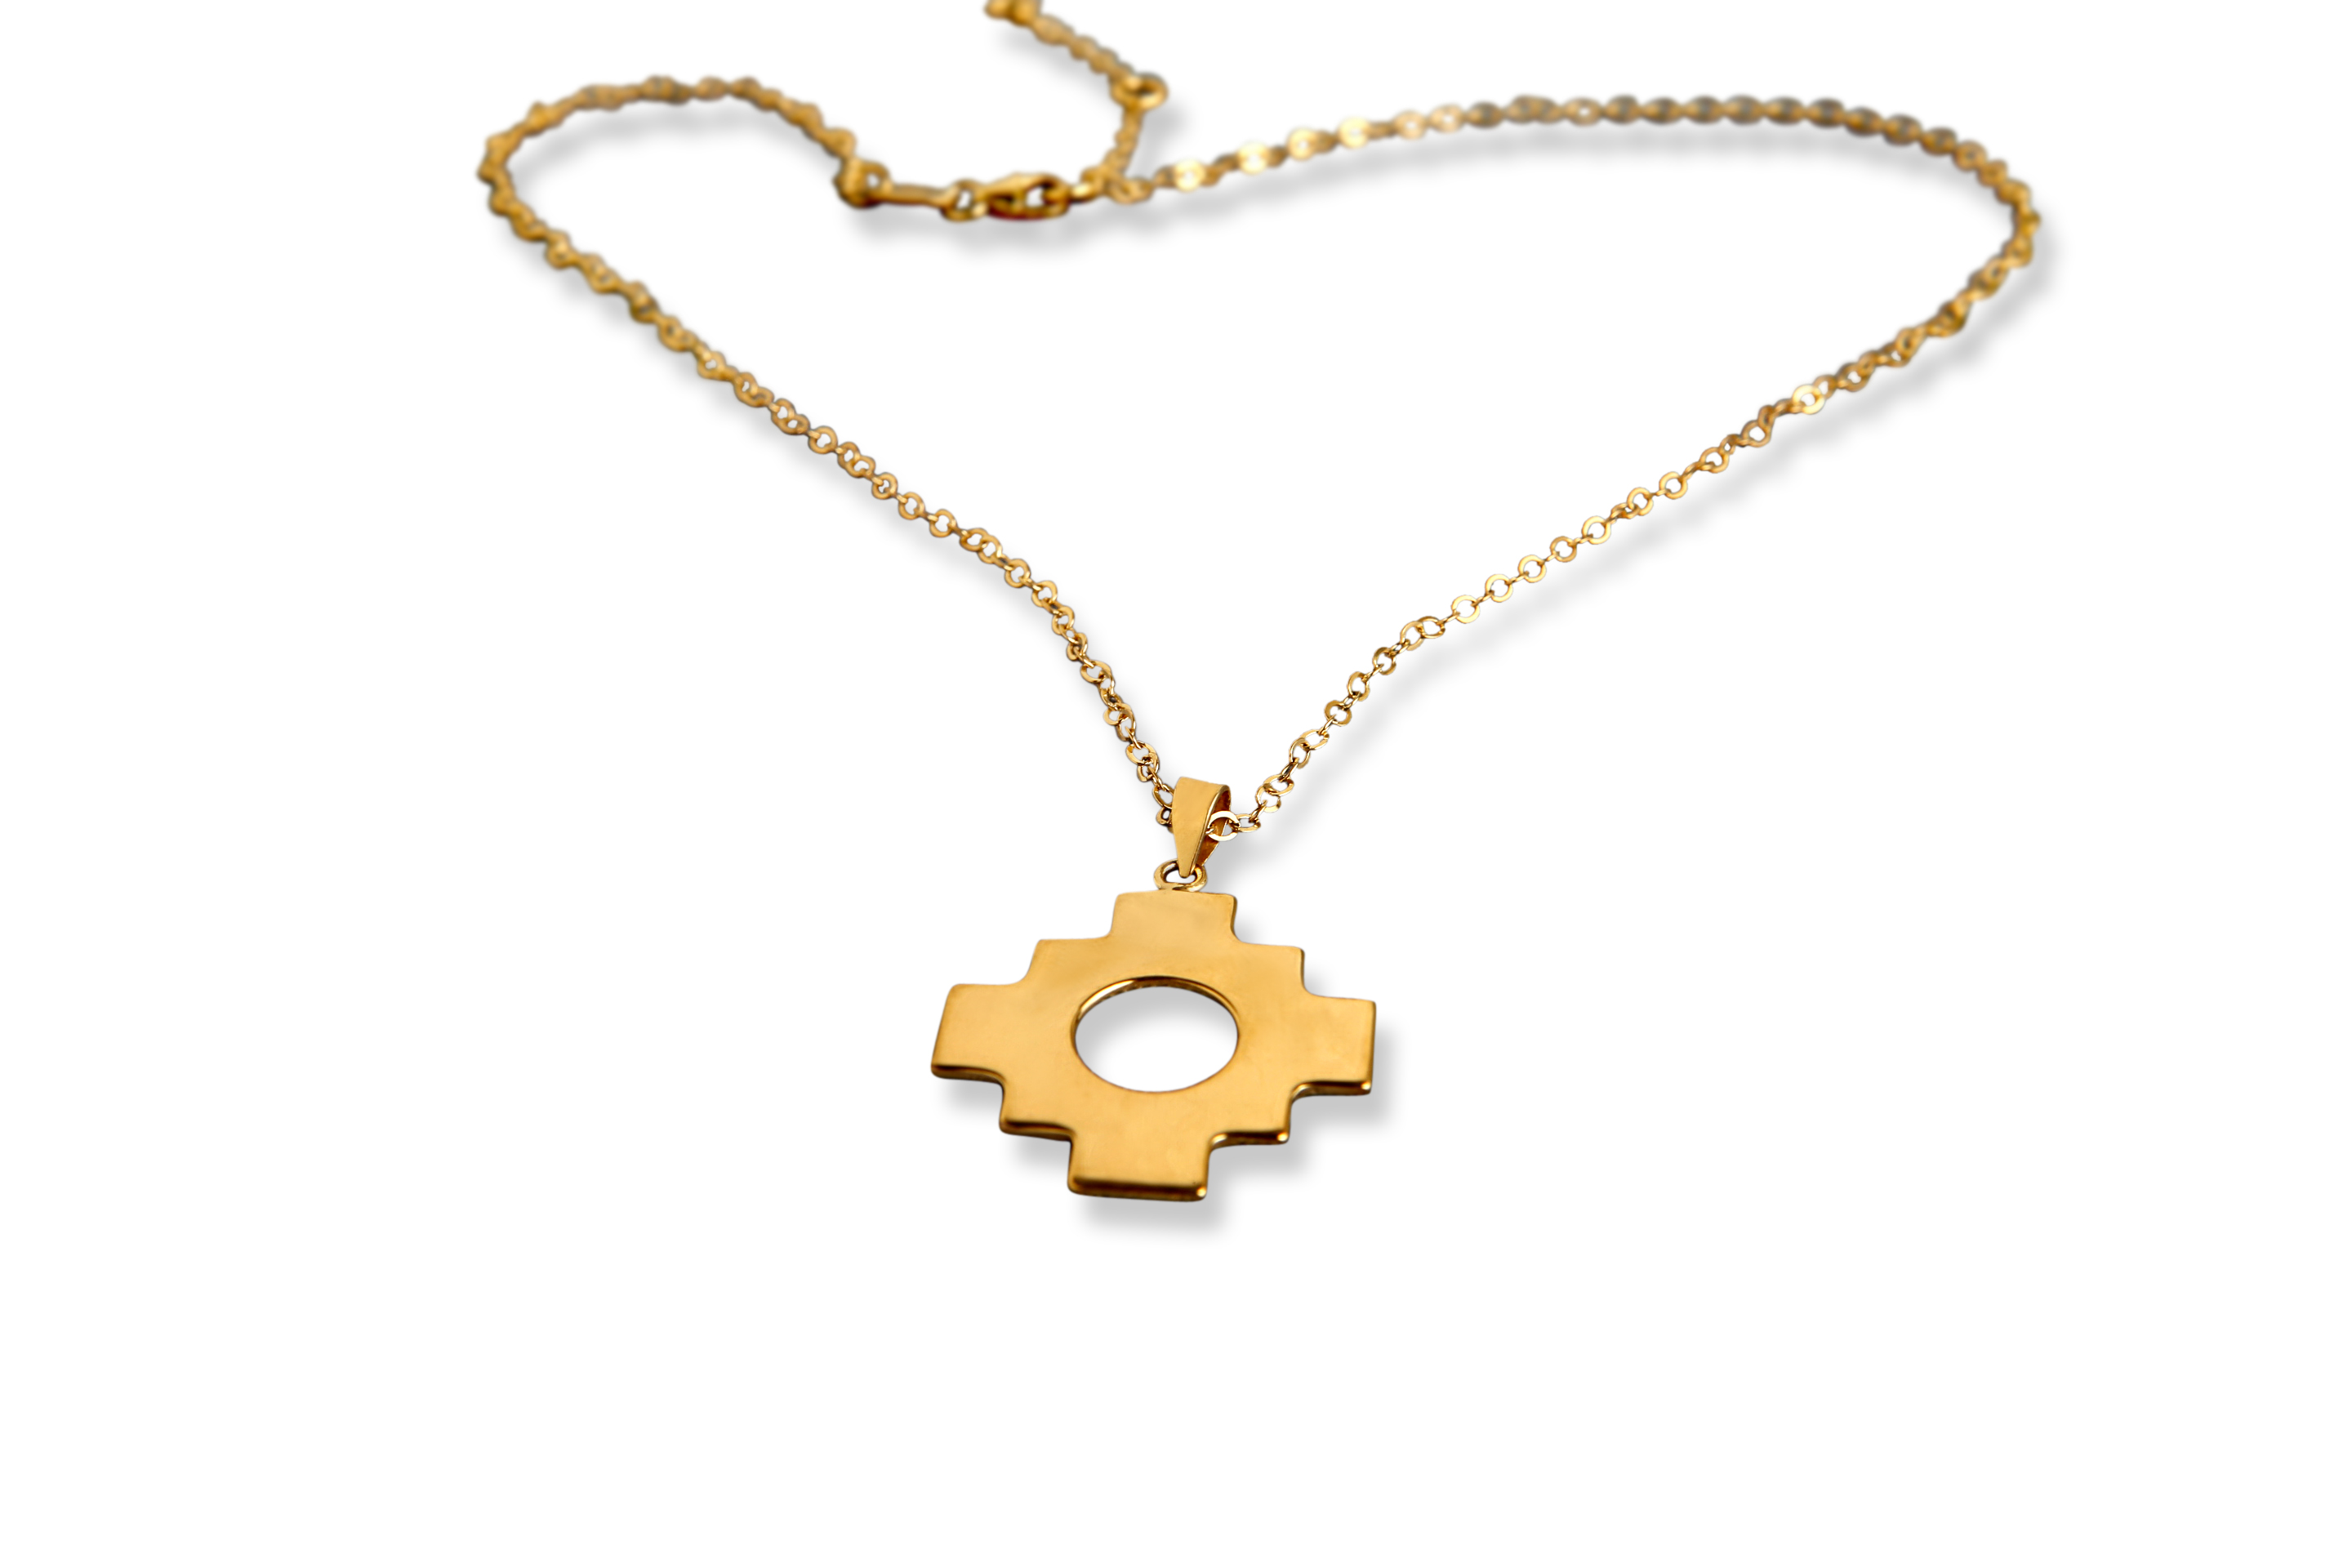 Necklaces archives soluna chakana single necklace gold plated aloadofball Images